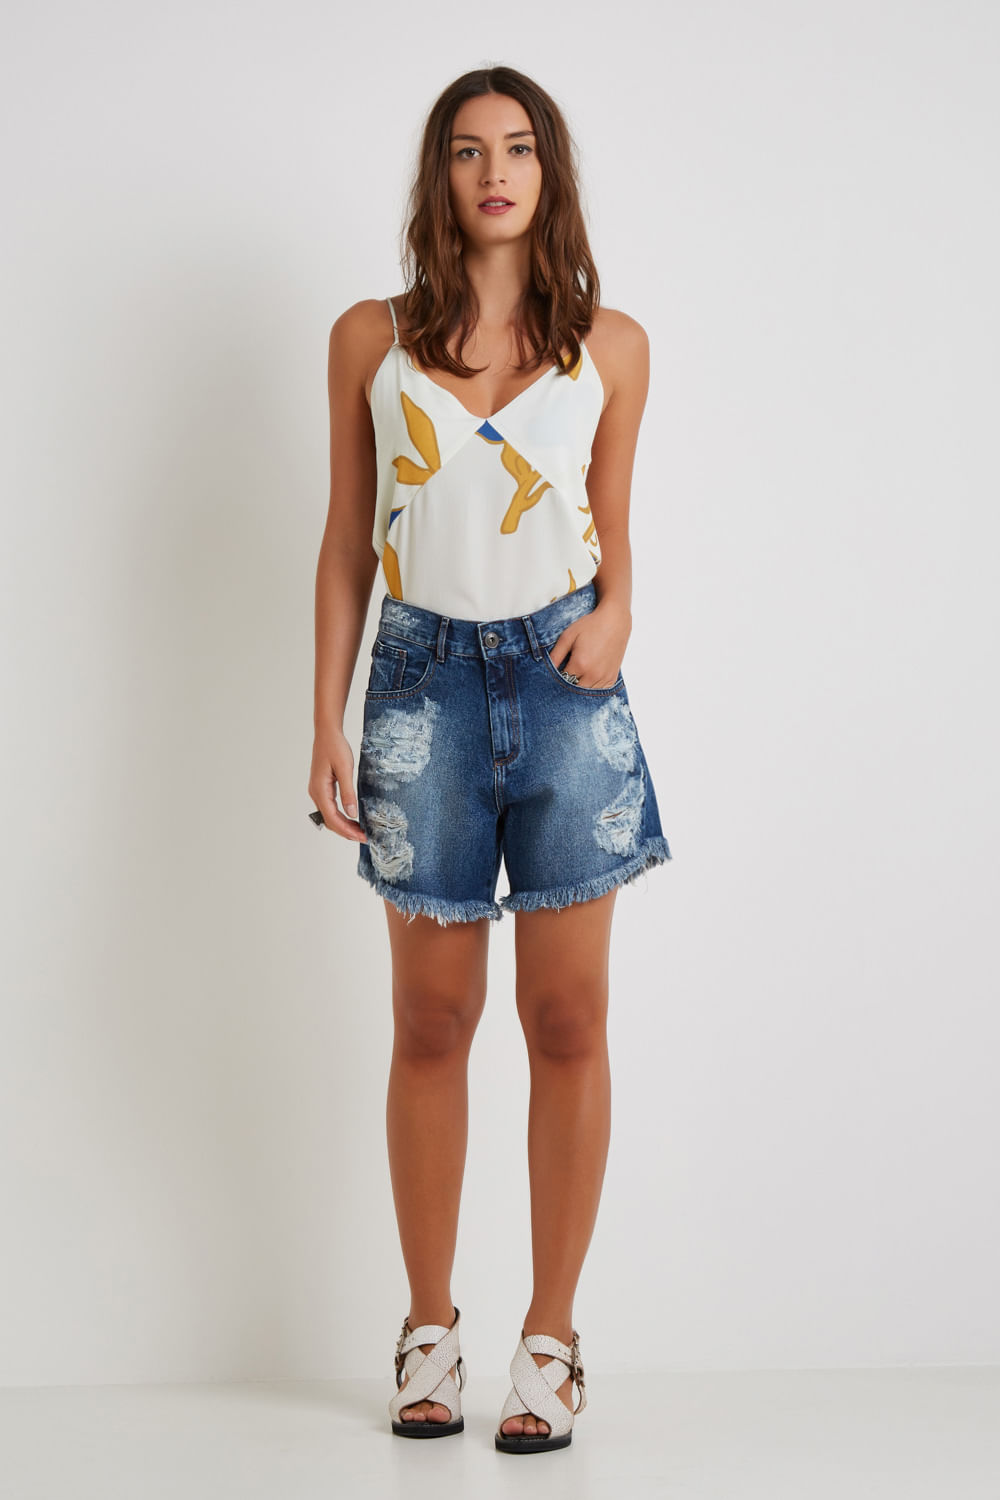 BERMUDA-JEANS-COOL-DESTROYED-01025865-SACADA